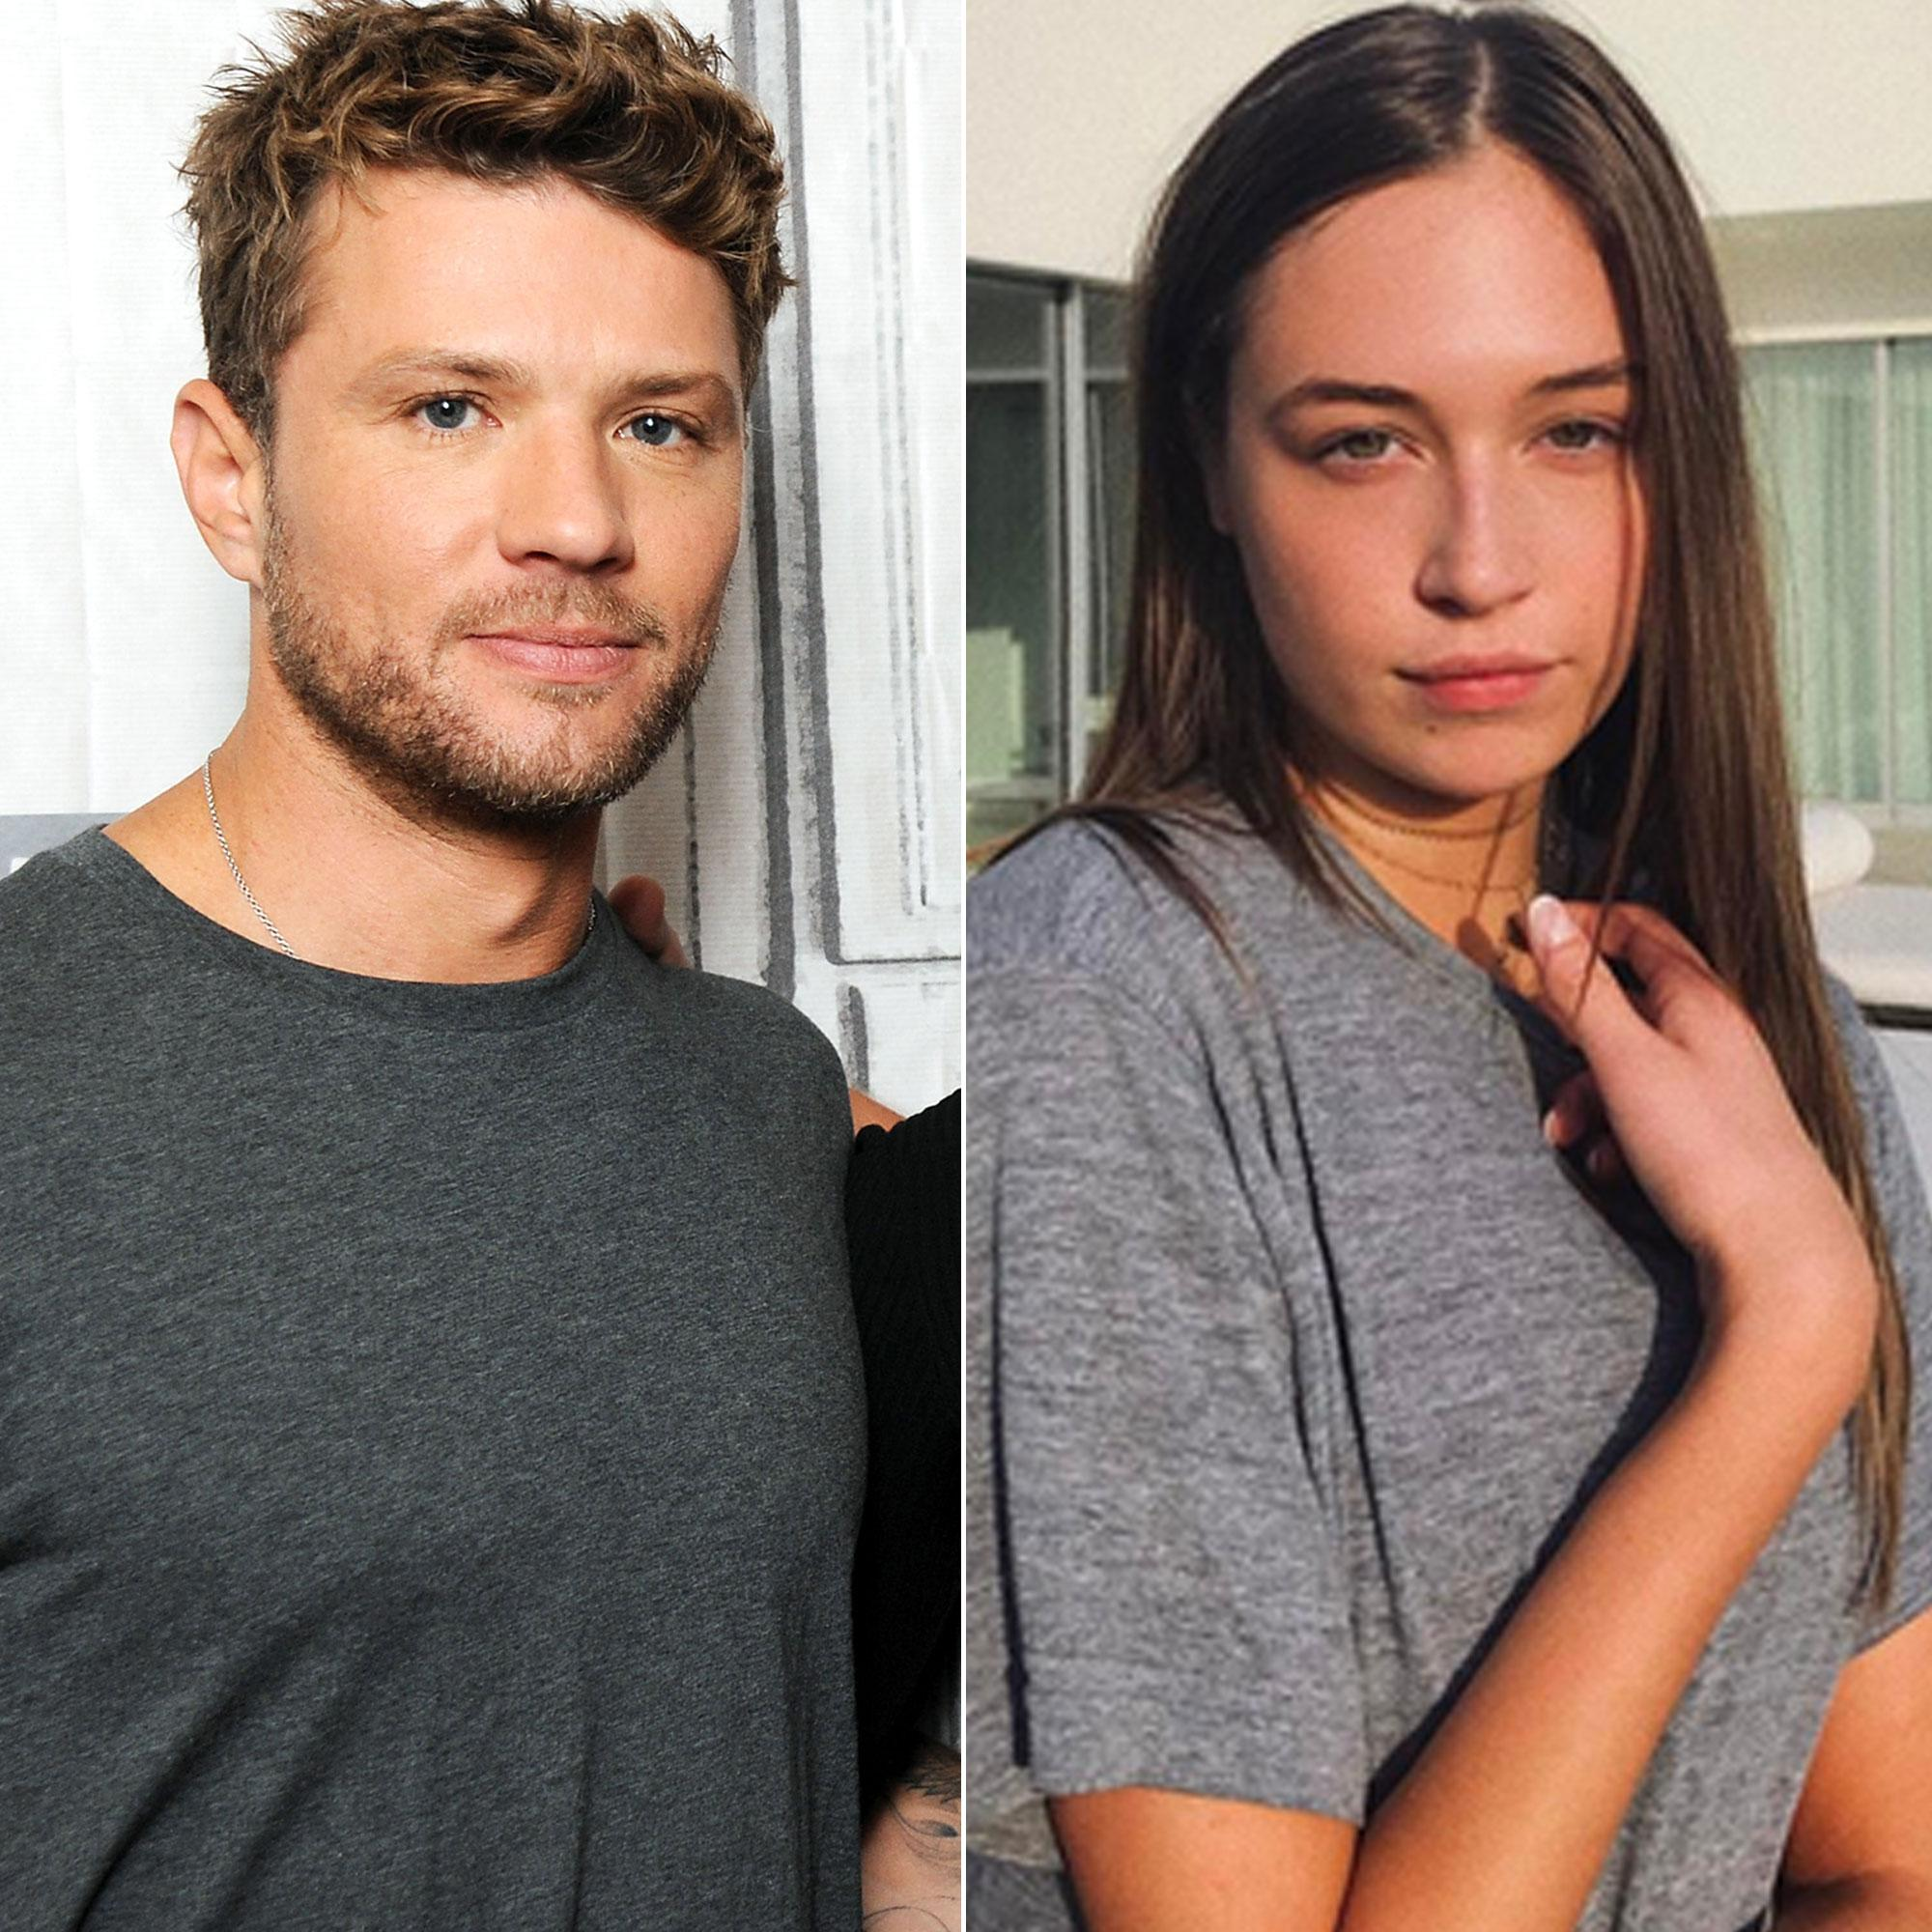 Model Elsie Hewitt Flies To Her Native London After Ex Ryan Phillippe Publicly Denies Domestic Violence Accusations